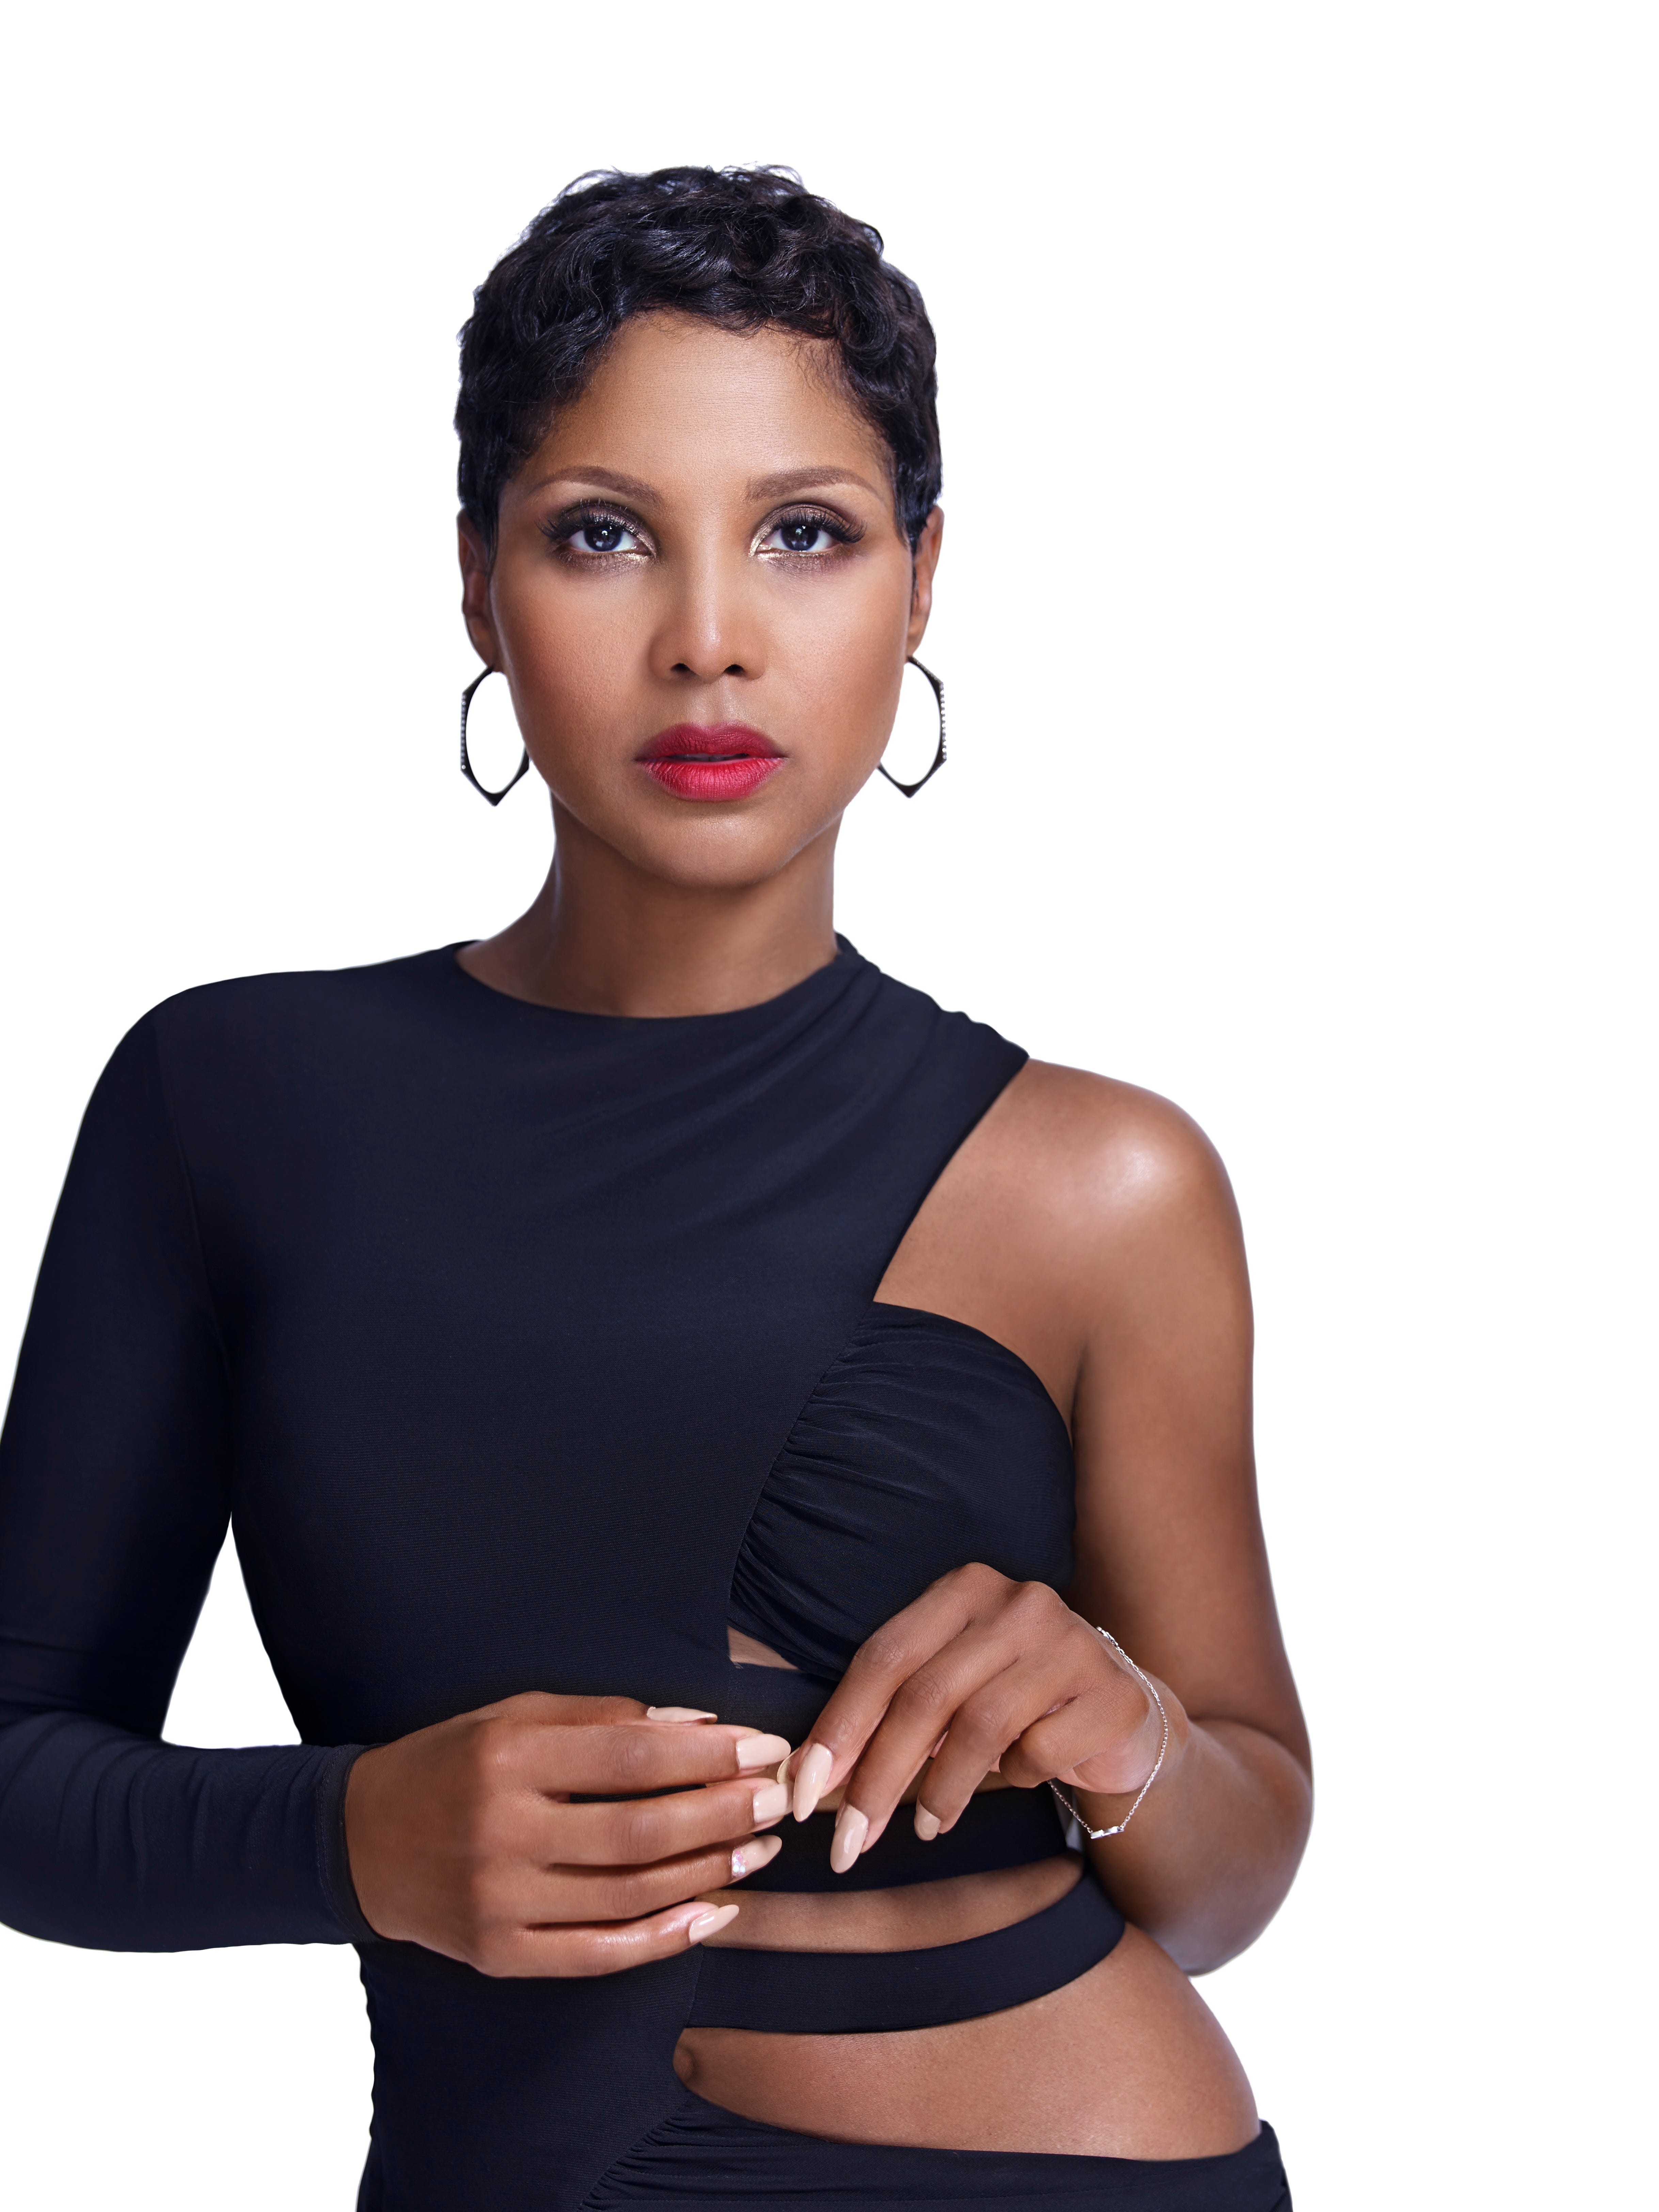 Toni Braxton naked (69 photos), Pussy, Cleavage, Twitter, cleavage 2015